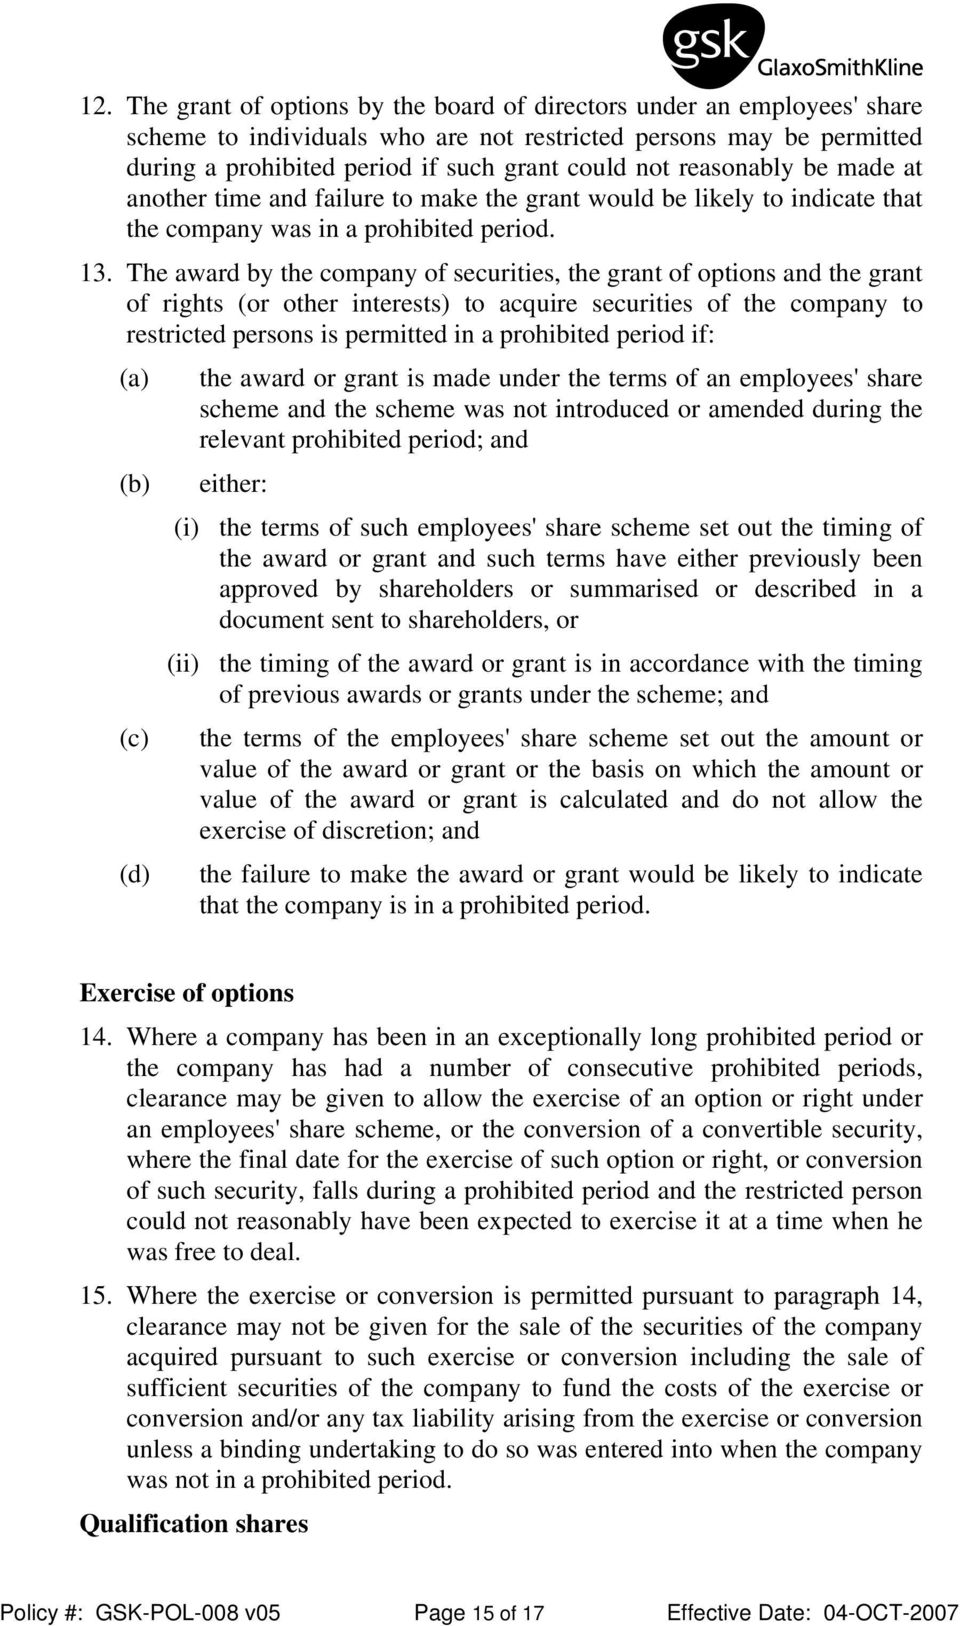 The award by the company of securities, the grant of options and the grant of rights (or other interests) to acquire securities of the company to restricted persons is permitted in a prohibited